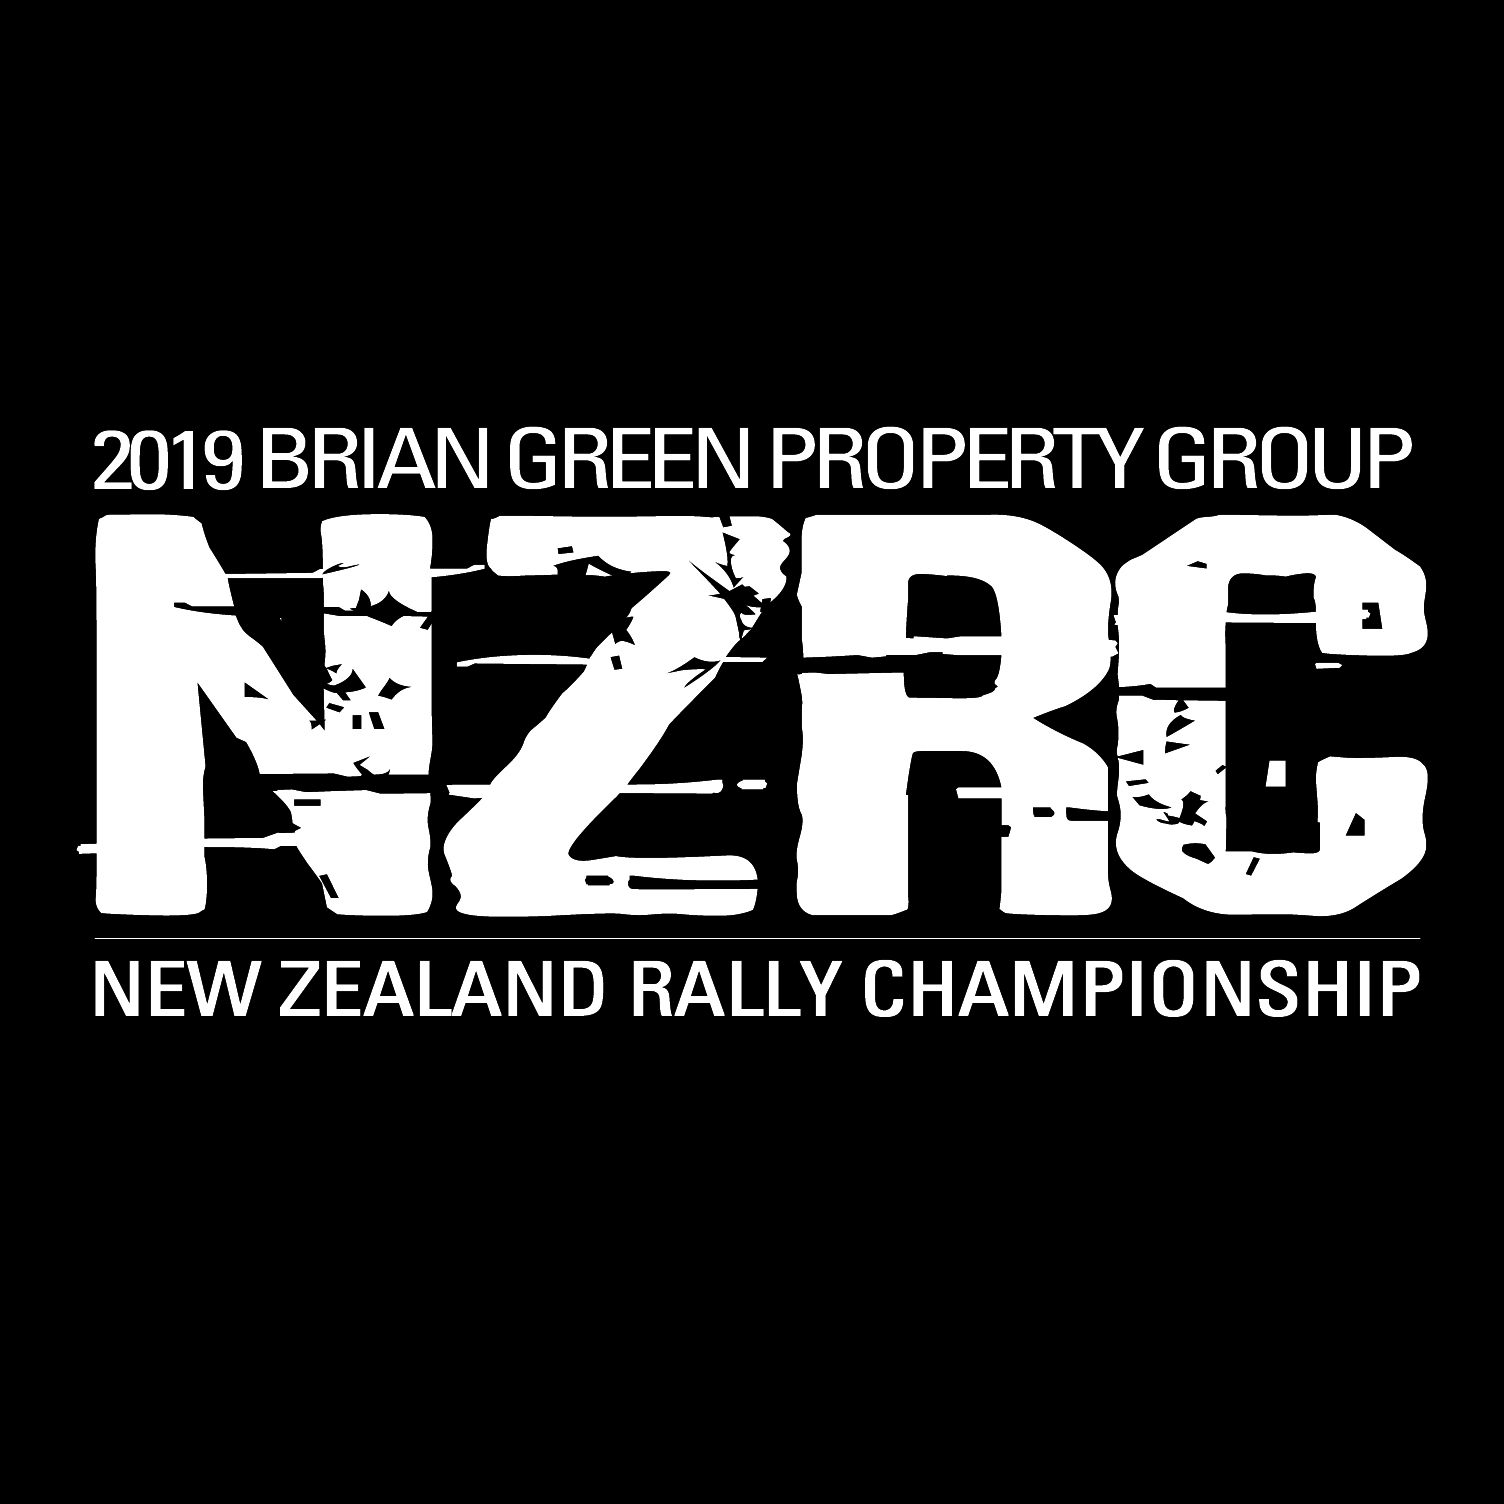 Stage Previews: Trusthouse Racetech Rally of Wairarapa | :: Brian Green Property Group New Zealand Rally Championship ::